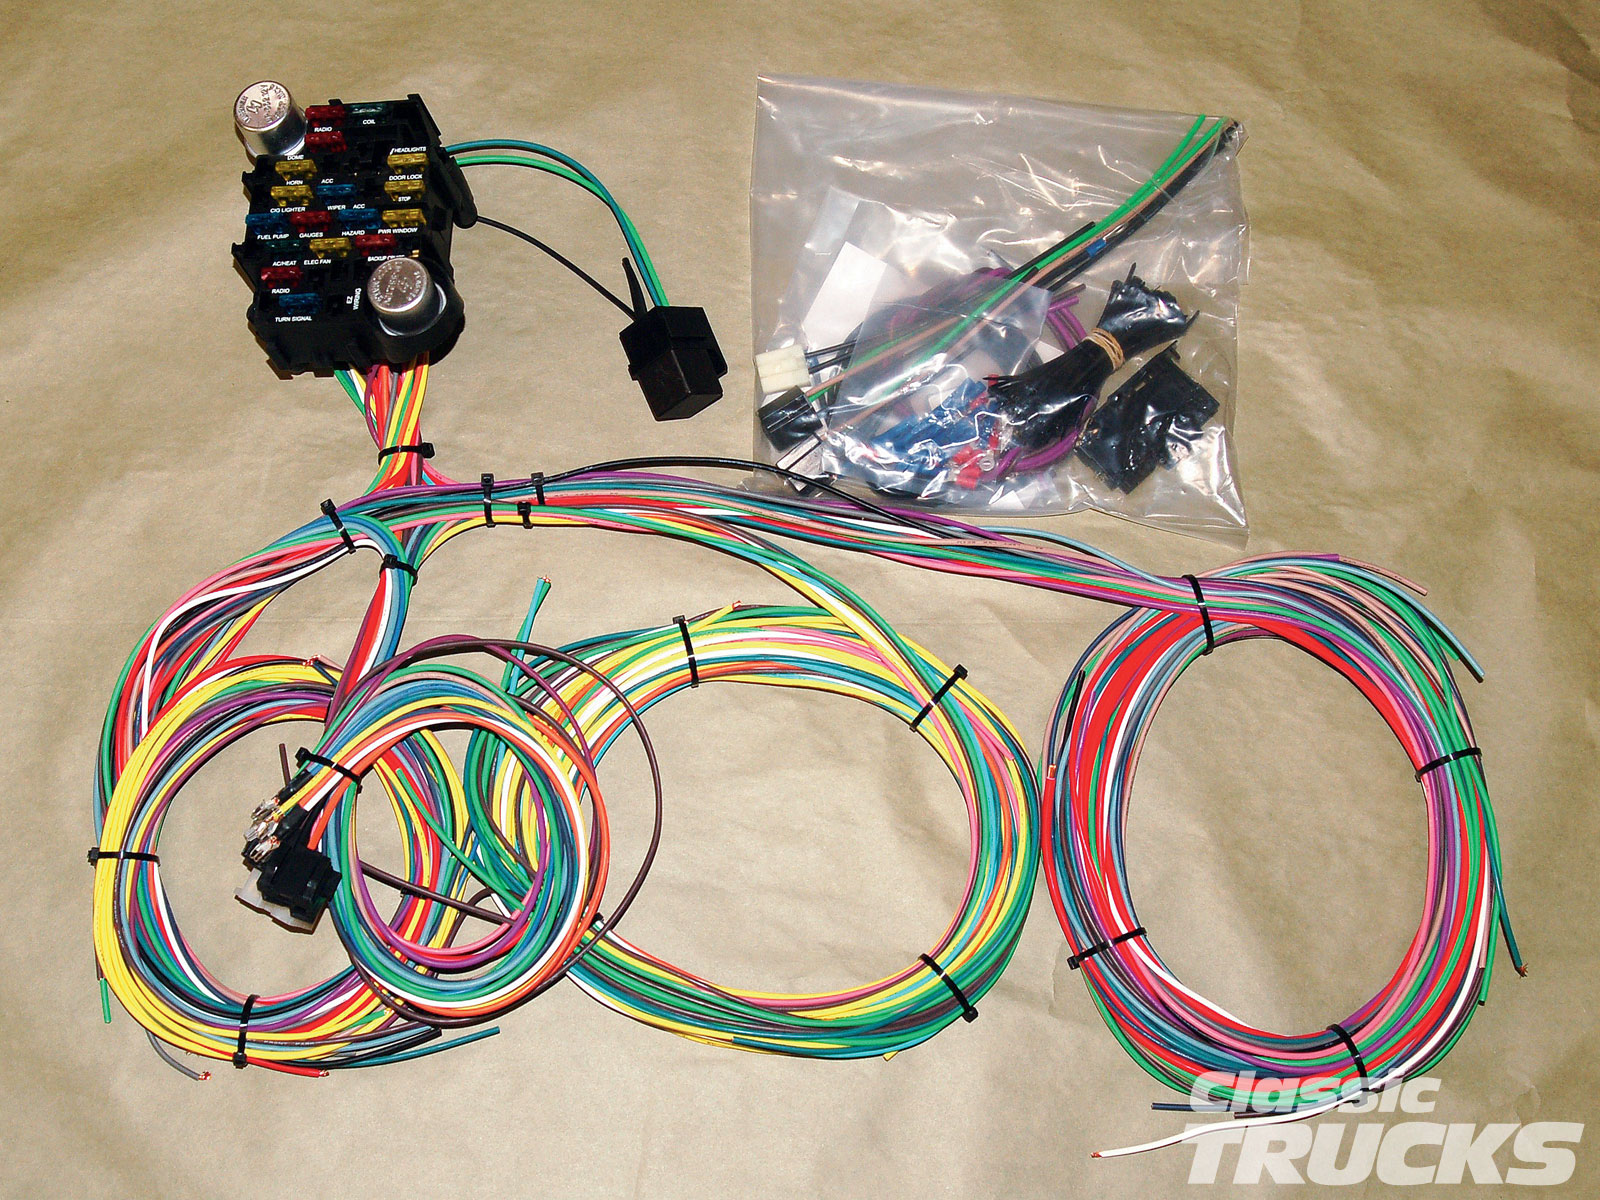 1010clt 02 o aftermarket wiring harness install kit?resize\\\=665%2C499 painless wiring harness australia tamahuproject org universal wiring harness australia at beritabola.co